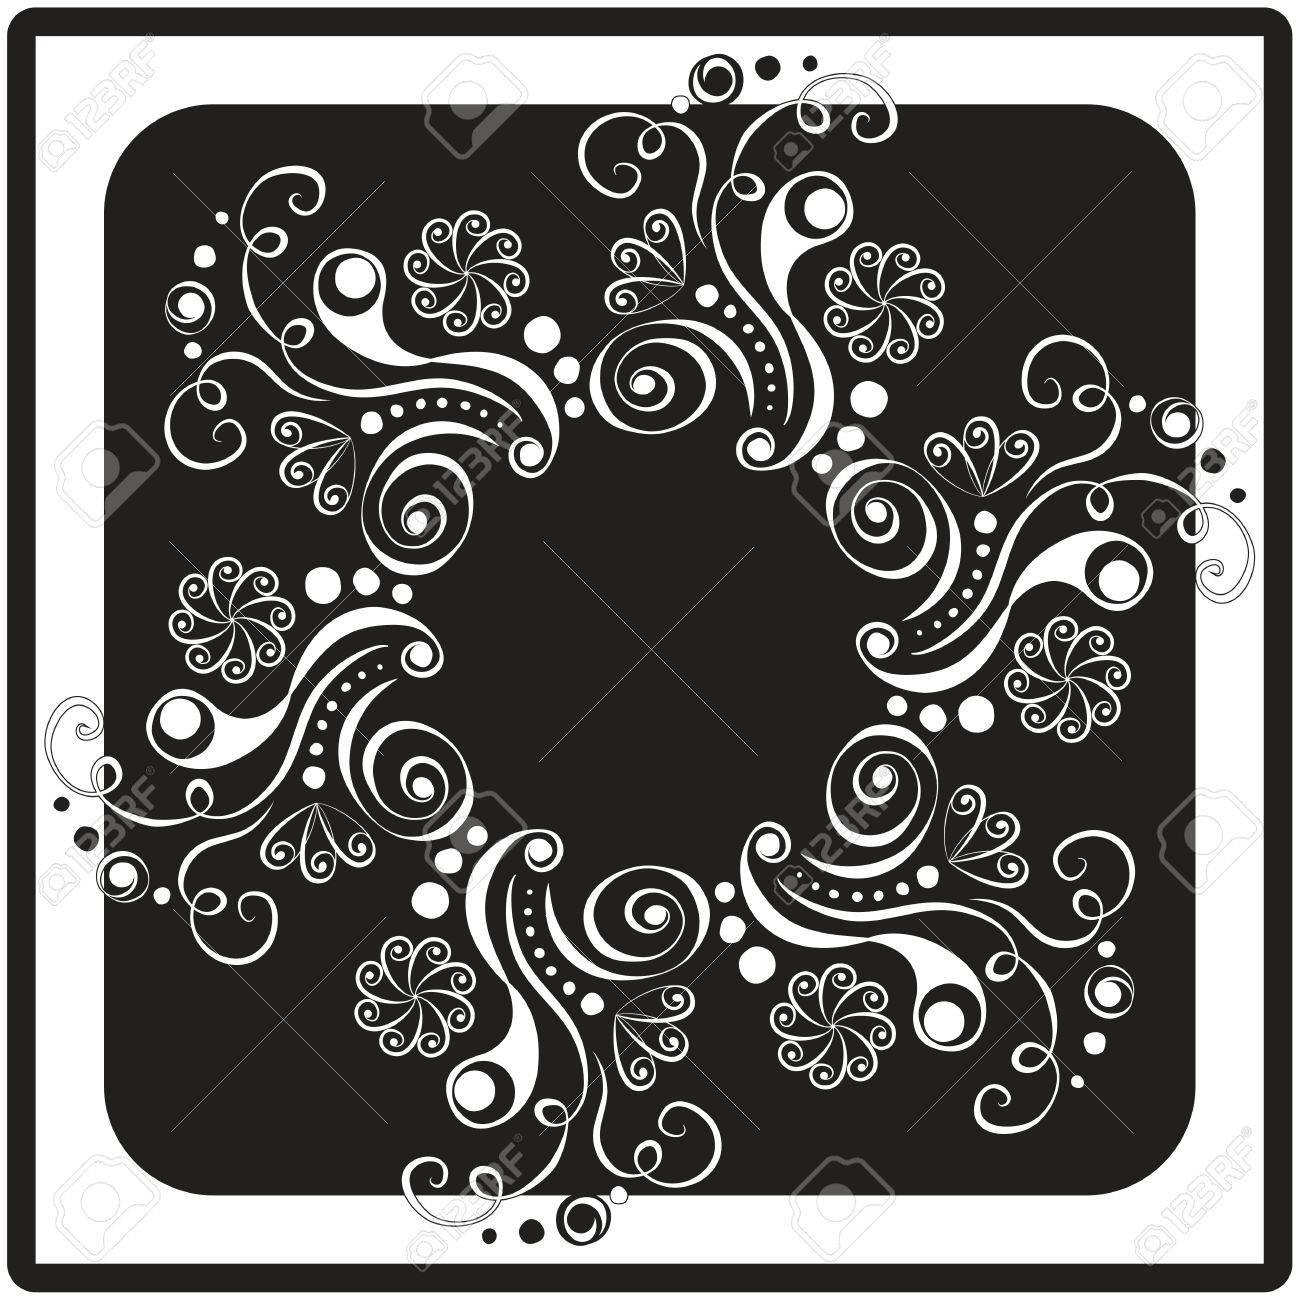 graphic floral card Stock Vector - 12088216